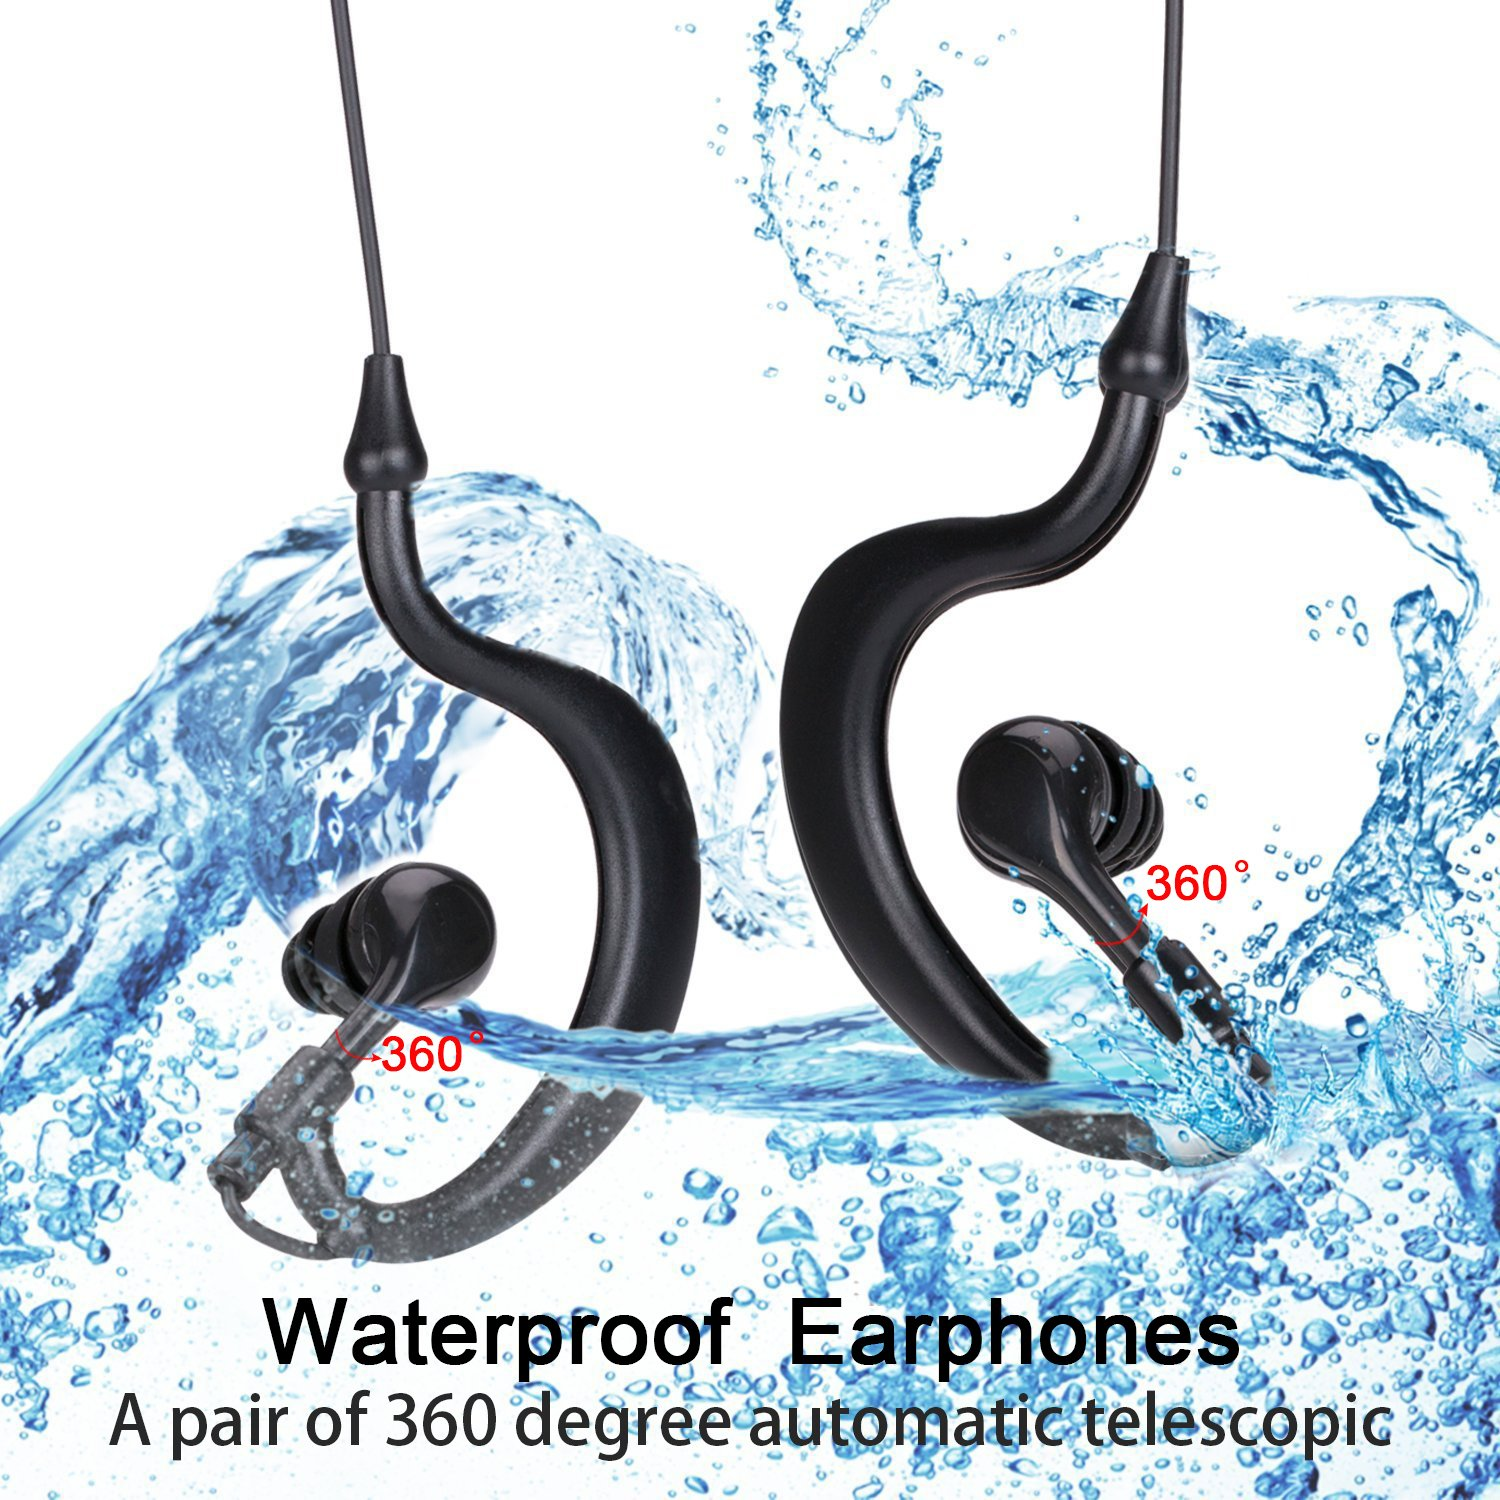 Waterproof MP3 Player, EATPOW 8GB IPX8 Upgraded Waterproof Stereo Earphone Underwater Sport MP3 with FM Radio Music Player for Swimming,Running,Water Sports (Max Depth 10M/32.8ft)